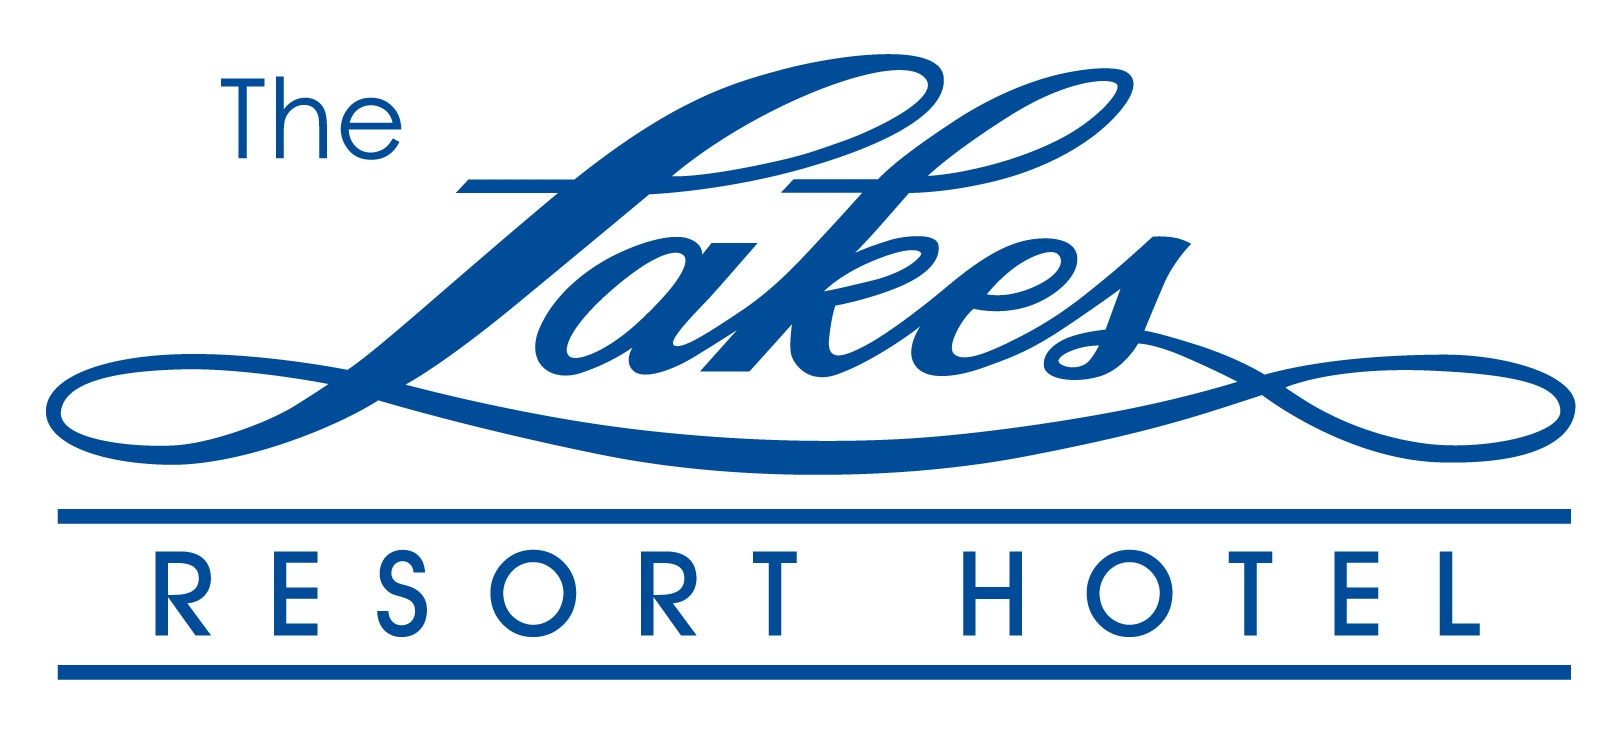 Lakes Resort Hotel - Accommodation in Surfers Paradise